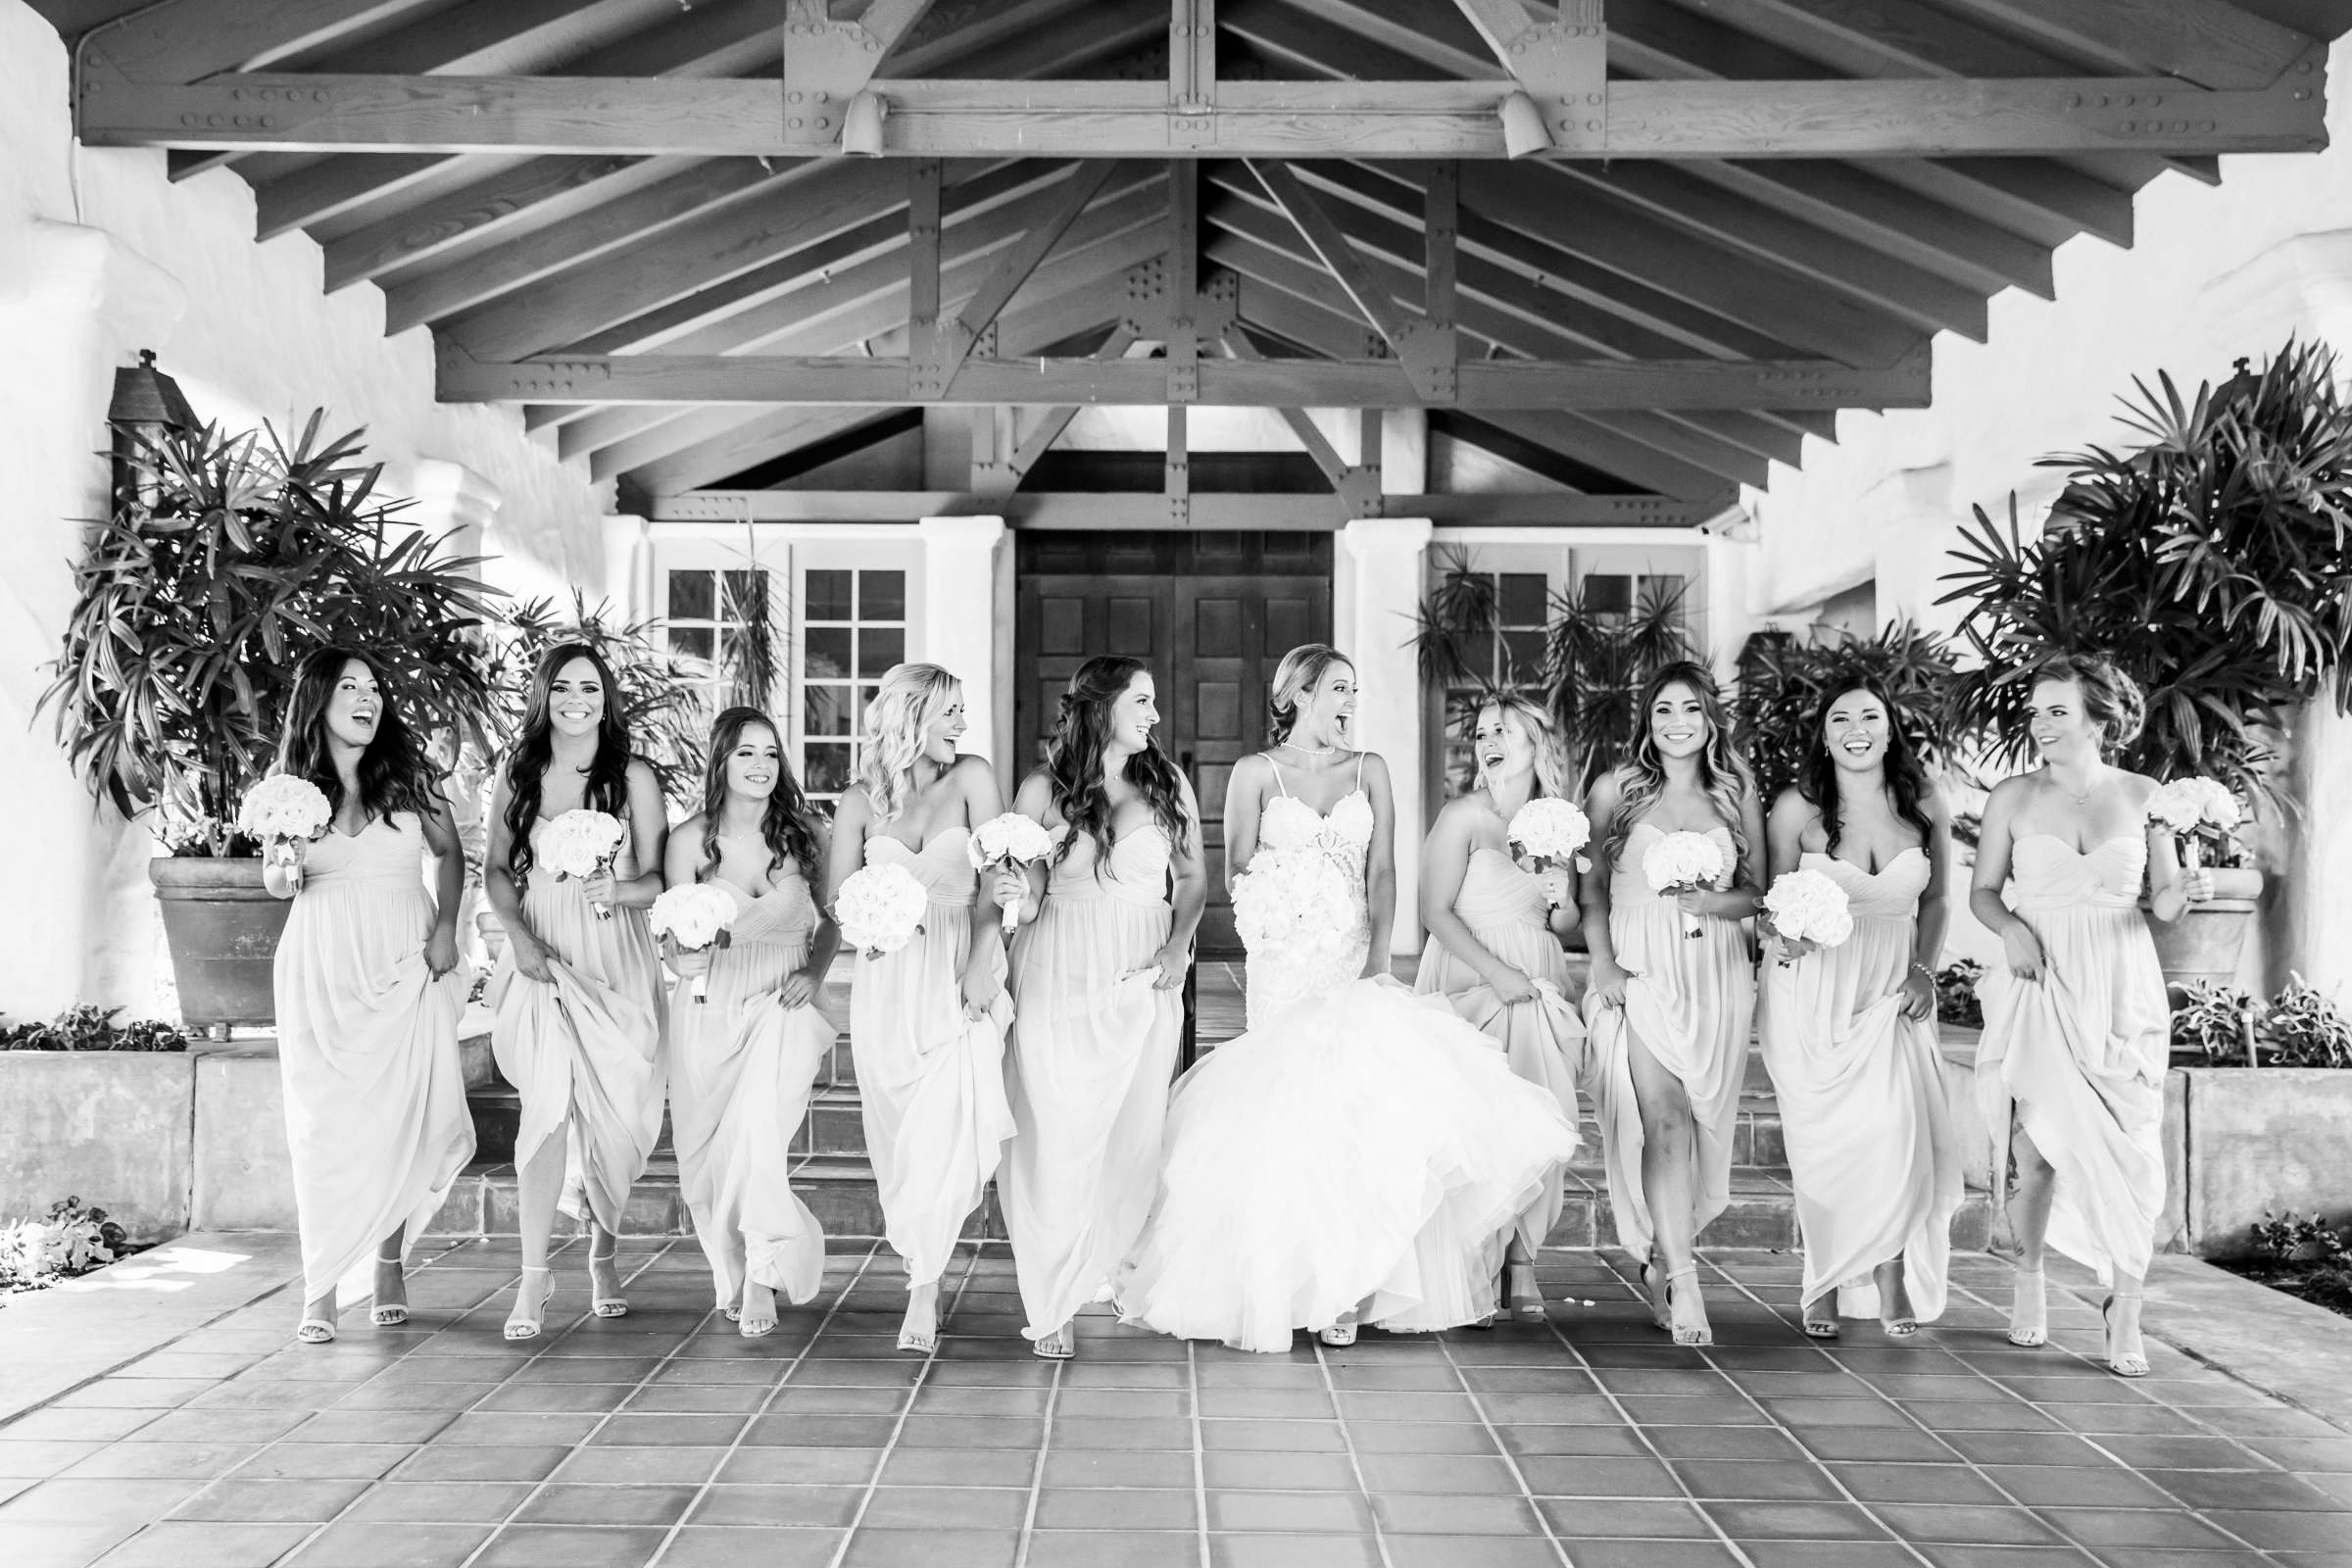 Fairbanks Ranch Country Club Wedding coordinated by Monarch Weddings, Gabriella and Kyle Wedding Photo #62 by True Photography